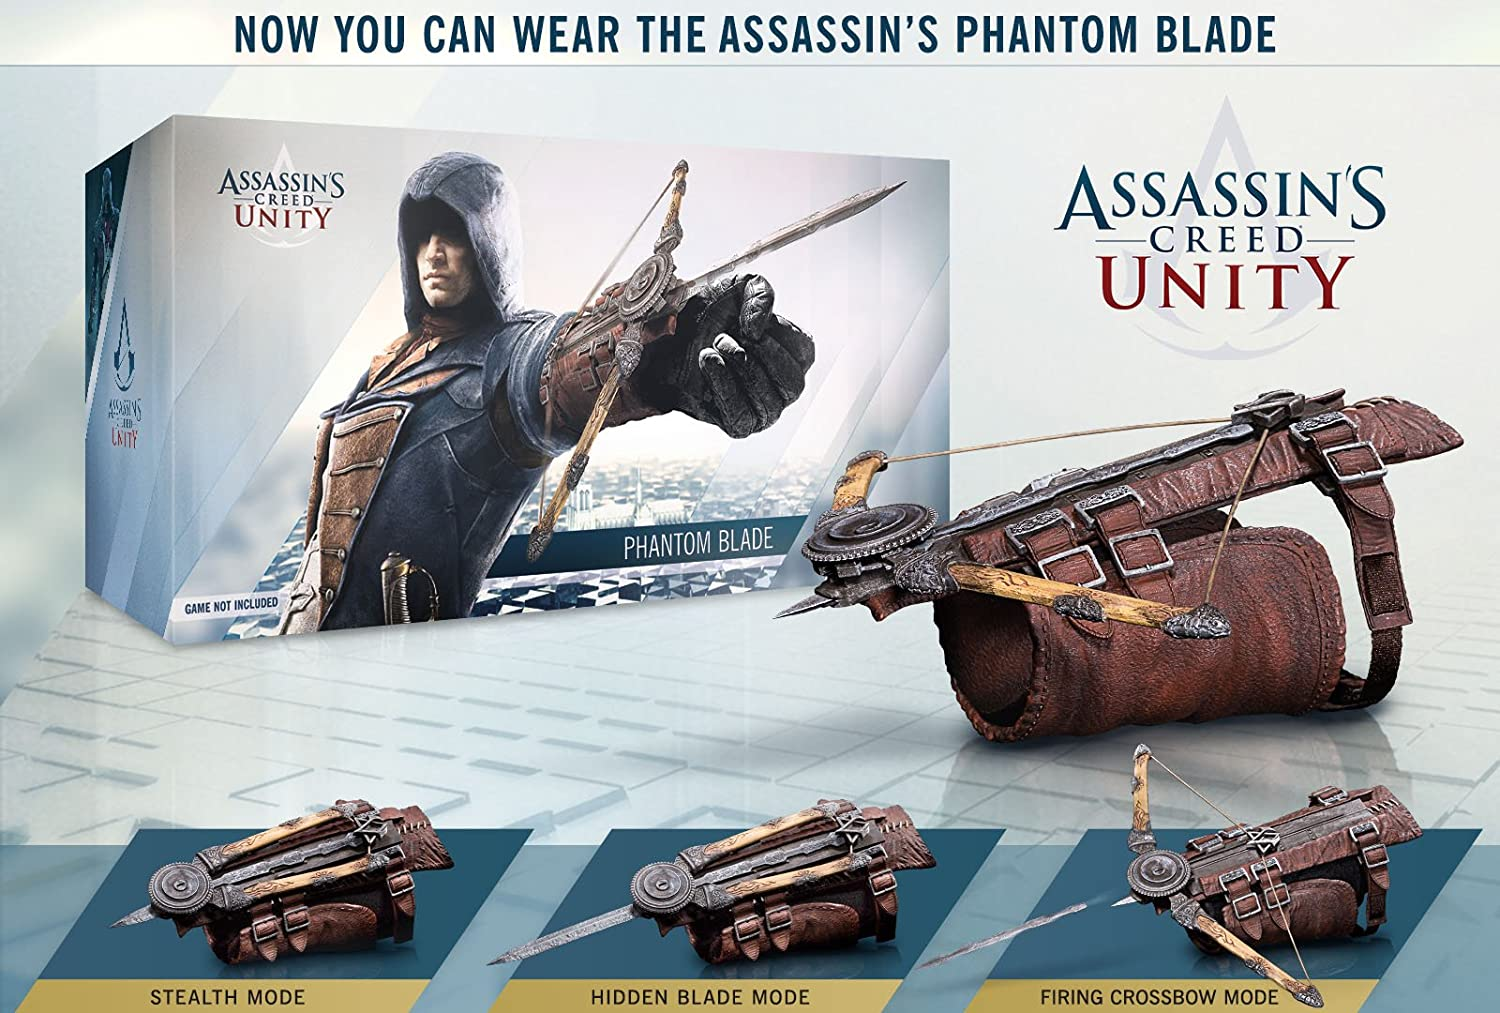 Assassin s creed unity review next available slot assassin s creed - Assassin S Creed Unity Review Next Available Slot Assassin S Creed 19